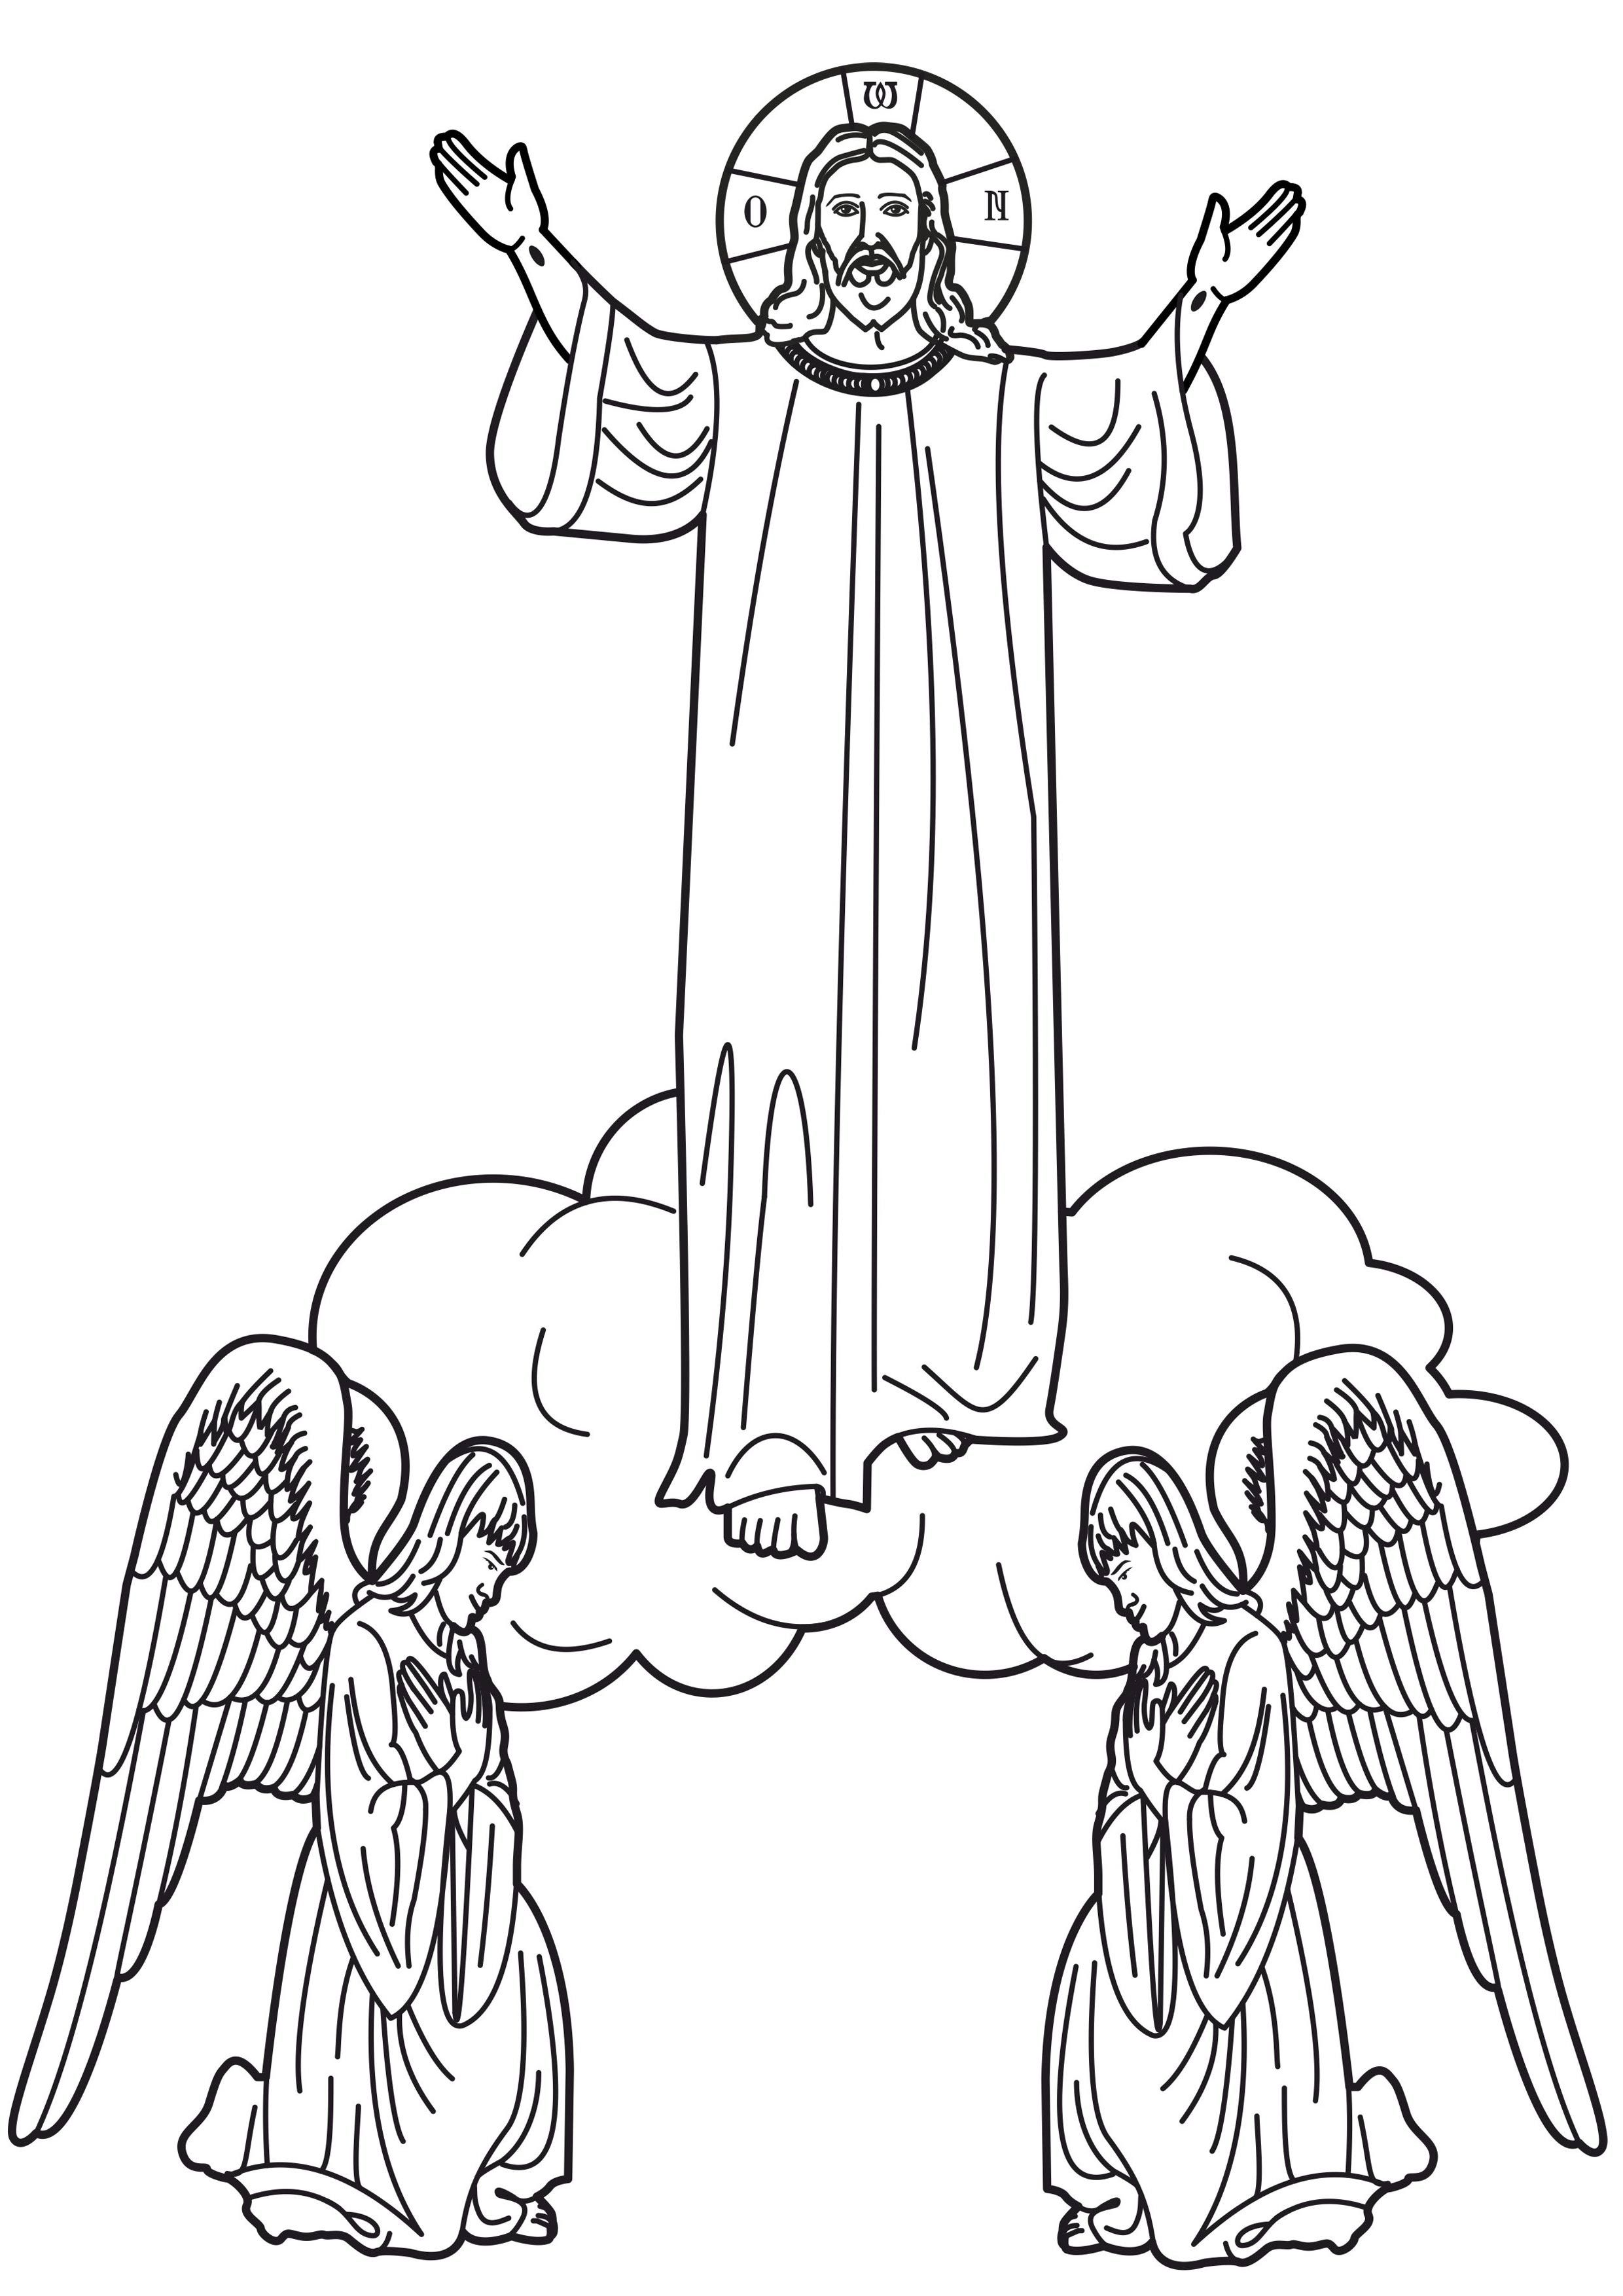 Christ's Ascension Into Heaven Coloring Page | Catholic